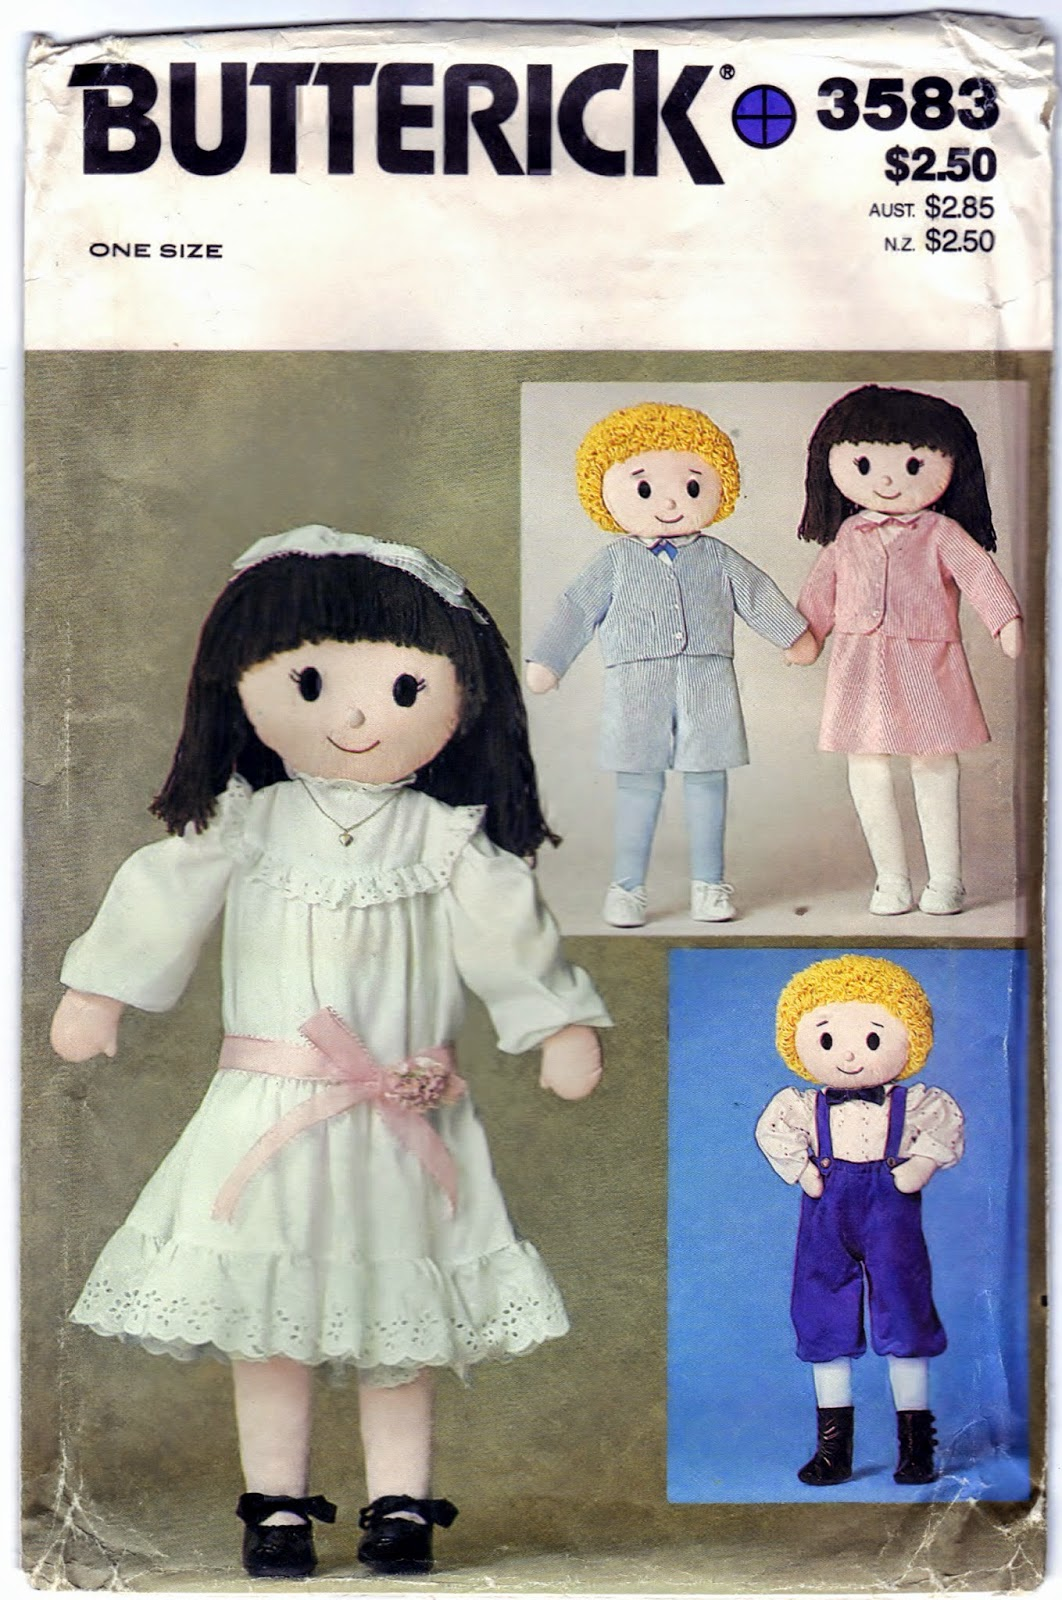 https://www.etsy.com/listing/209815185/butterick-3583-diy-pattern-dolls-32-in